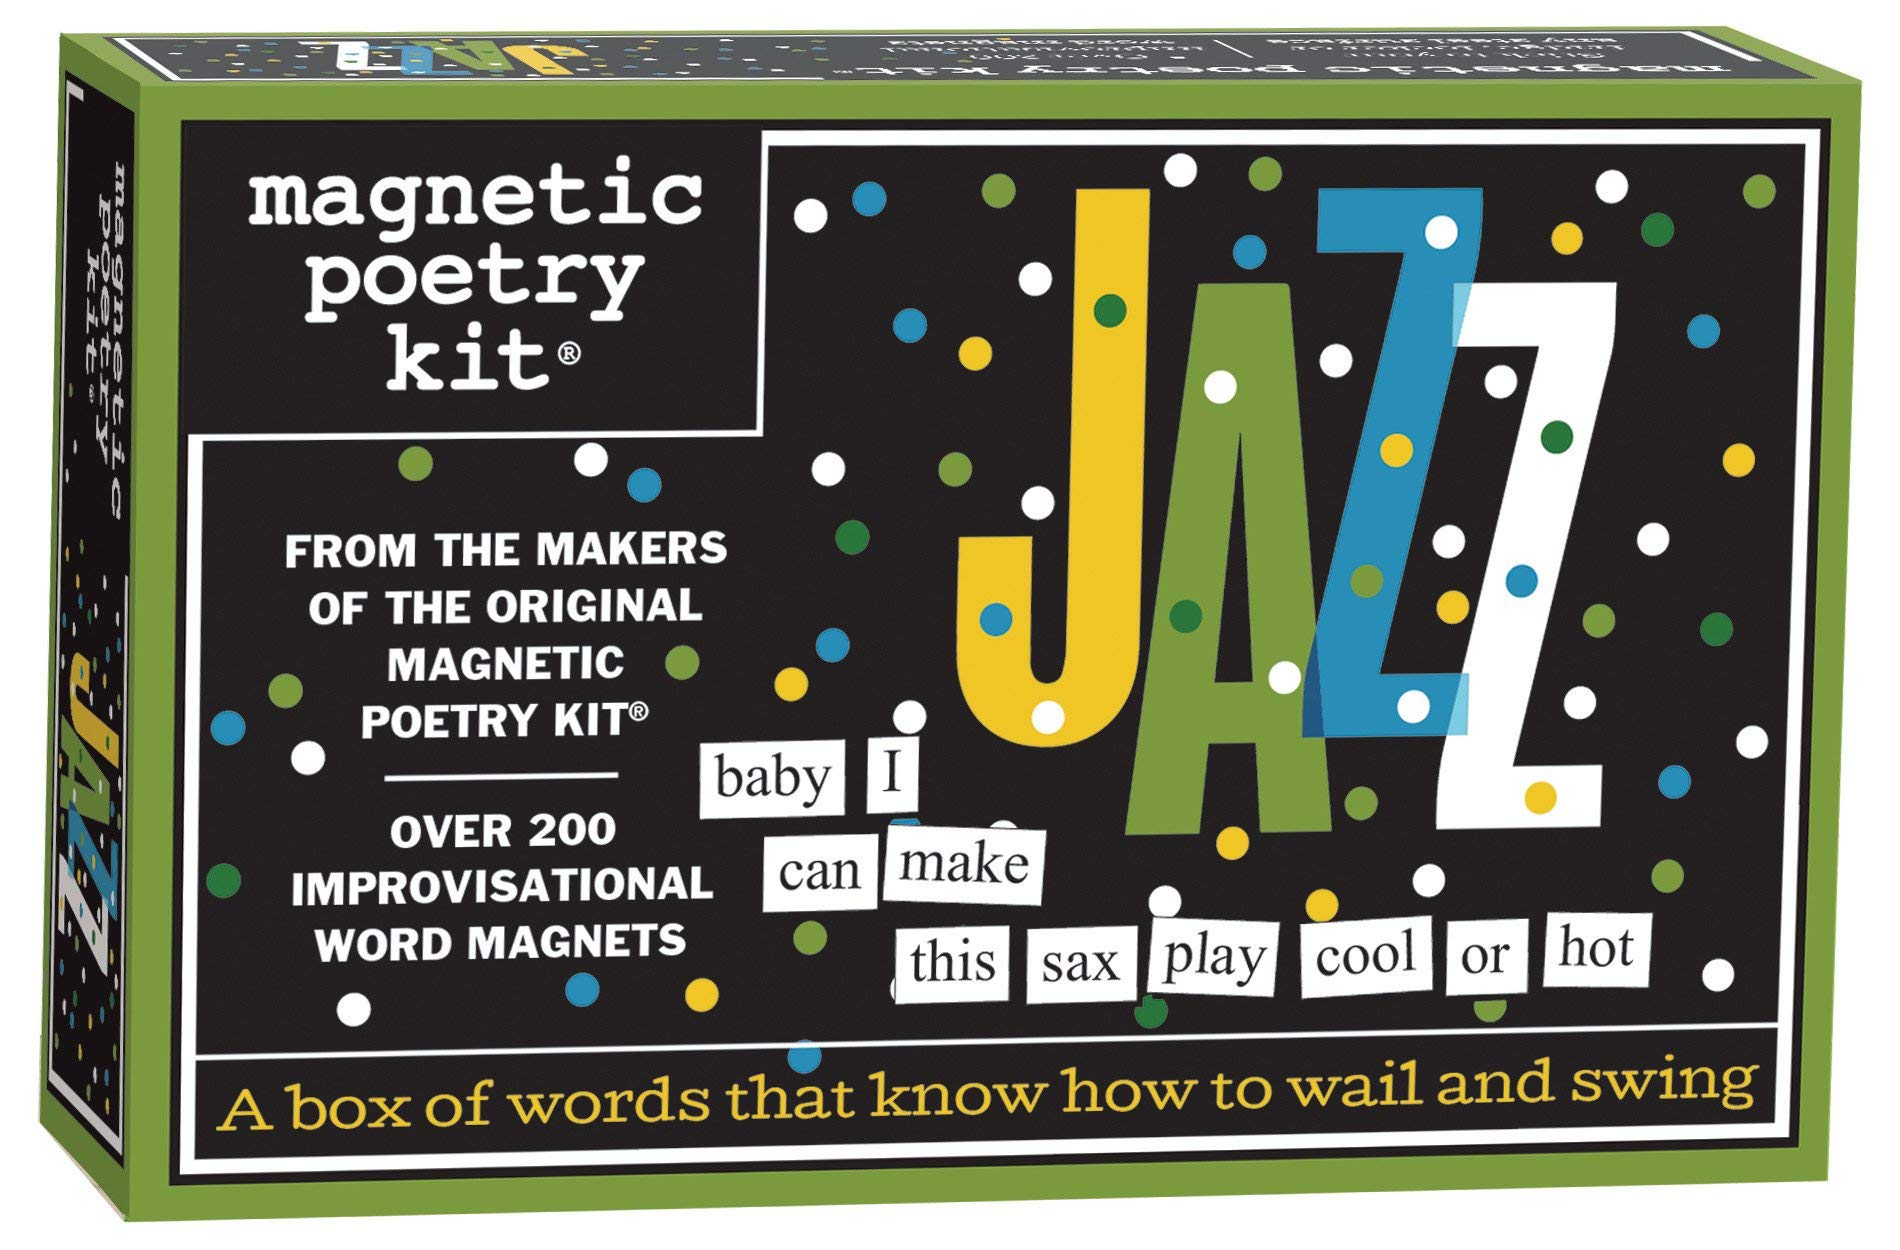 Magnetic Poetry - Jazz Kit - Words for Refrigerator - Write Poems and Letters on The Fridge - Made in The USA